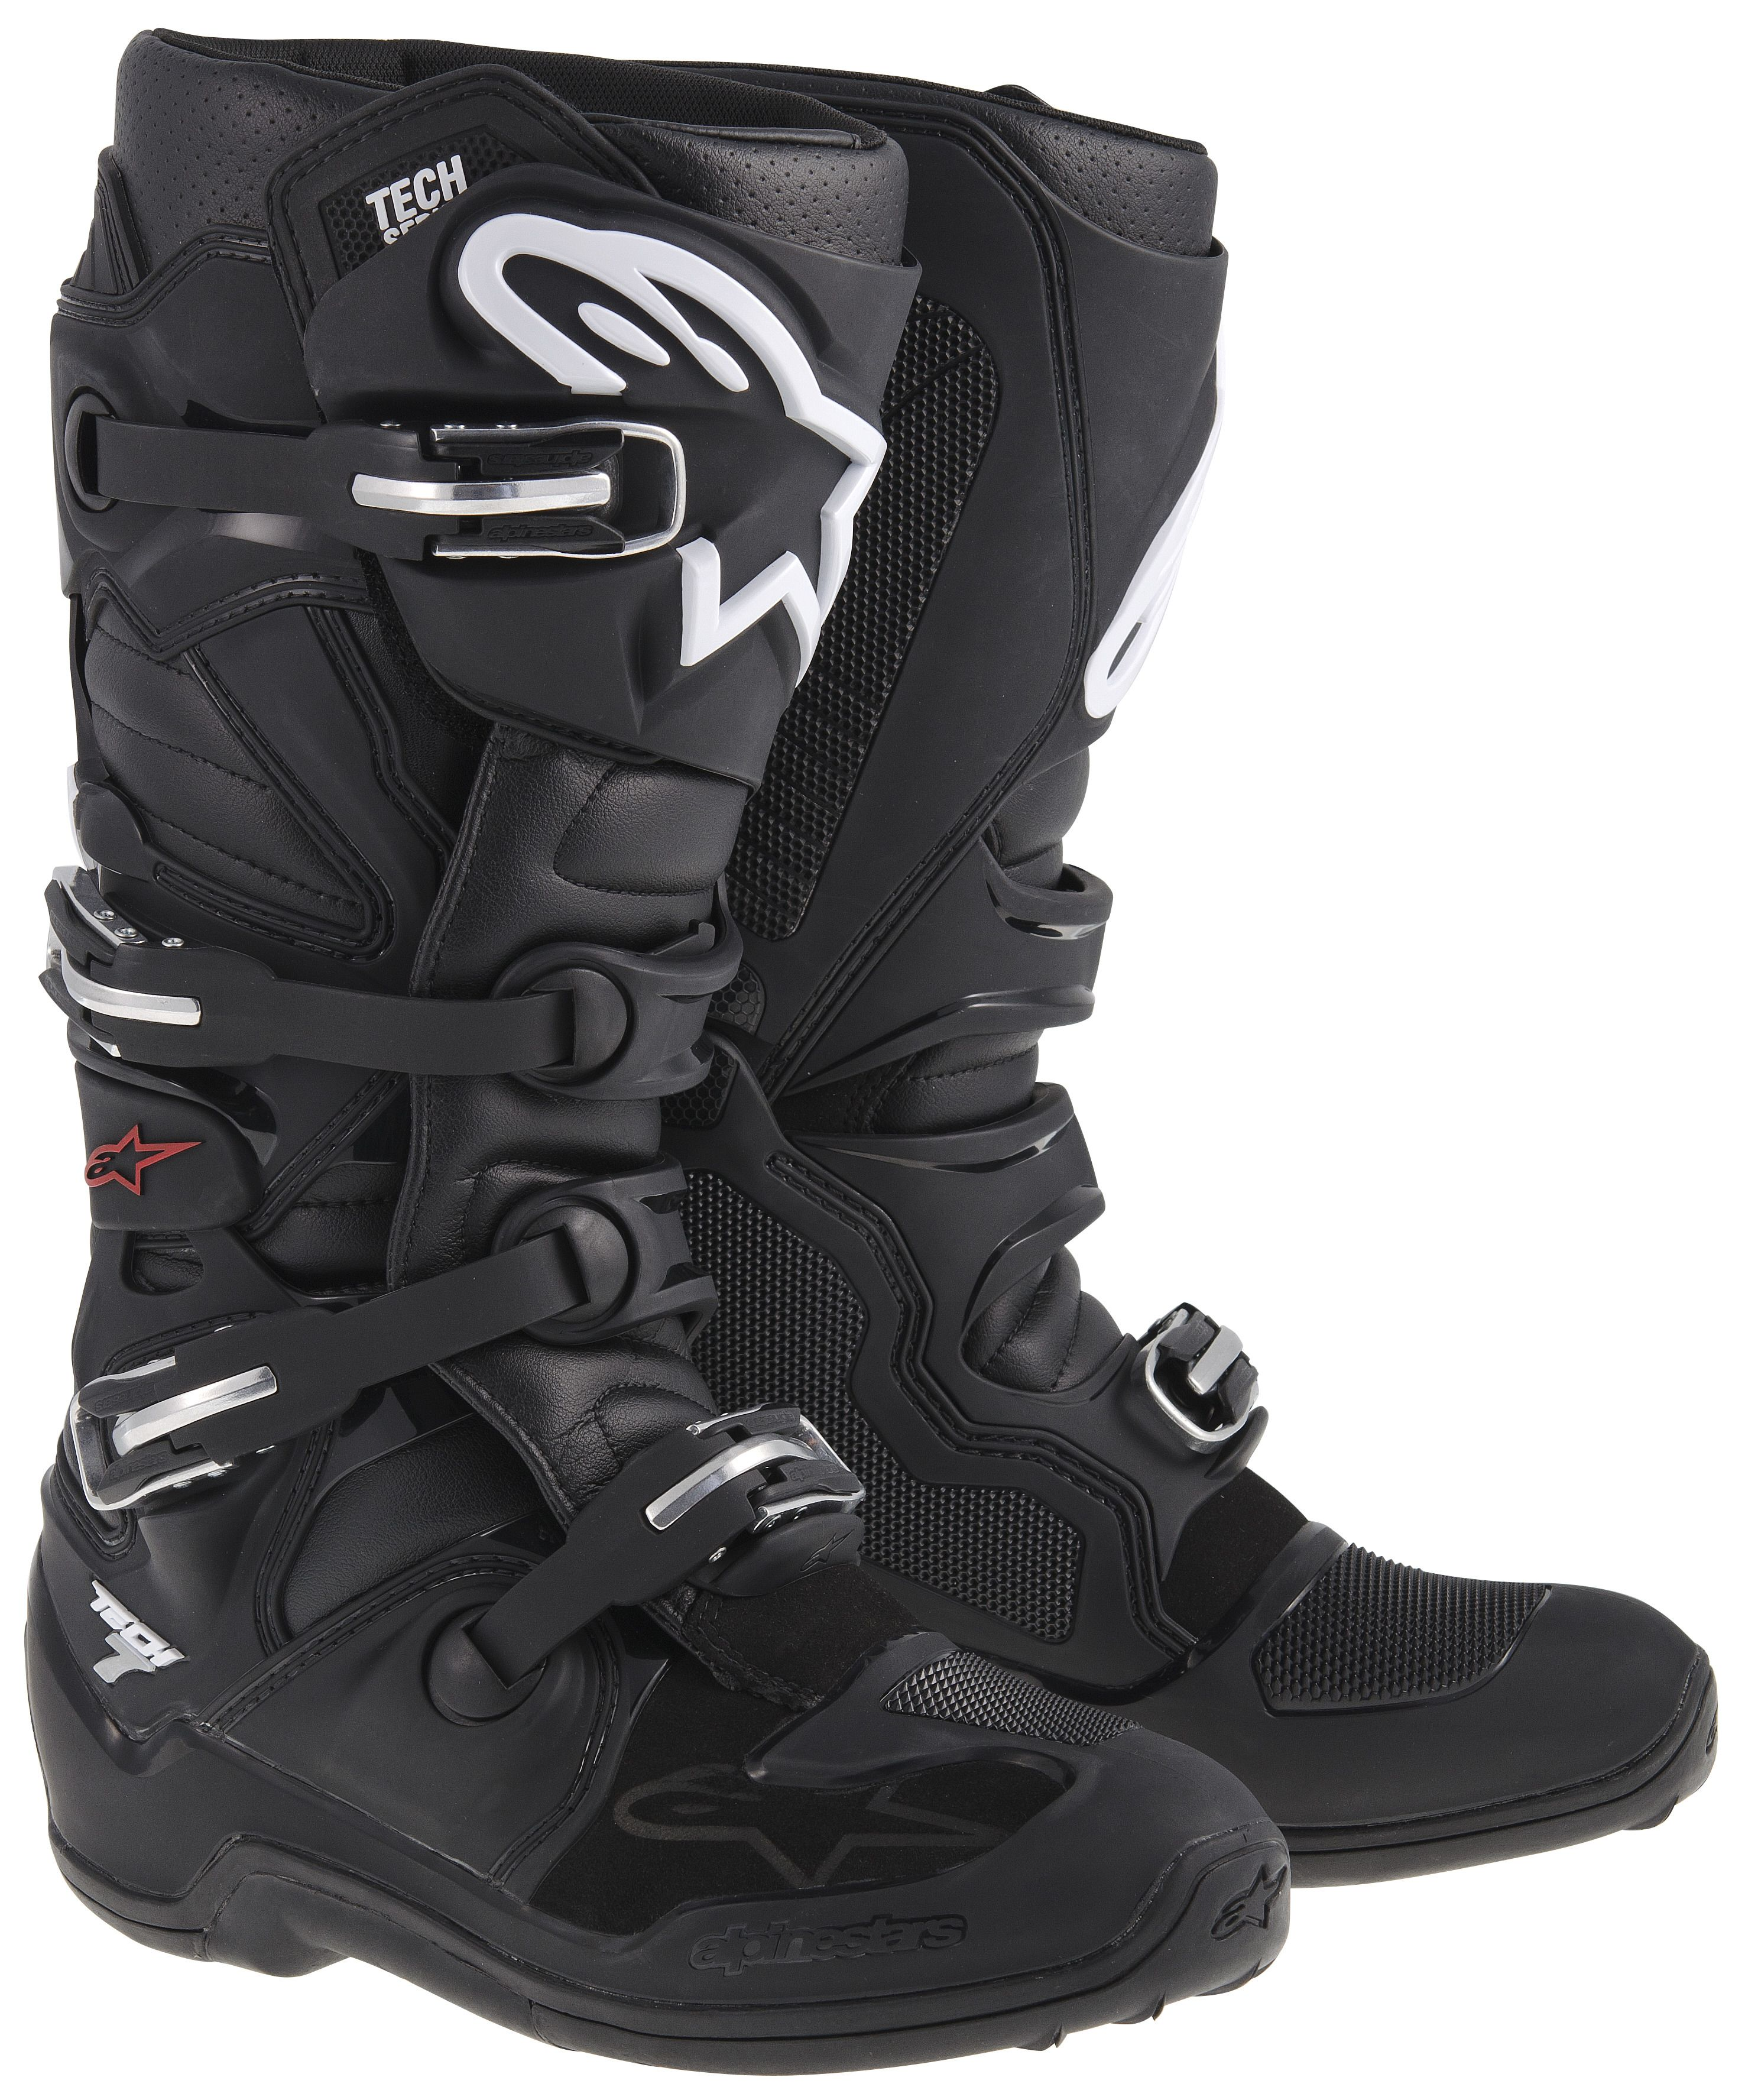 Alpine Motorcycle Gear >> Alpinestars Tech 7 Boots - RevZilla